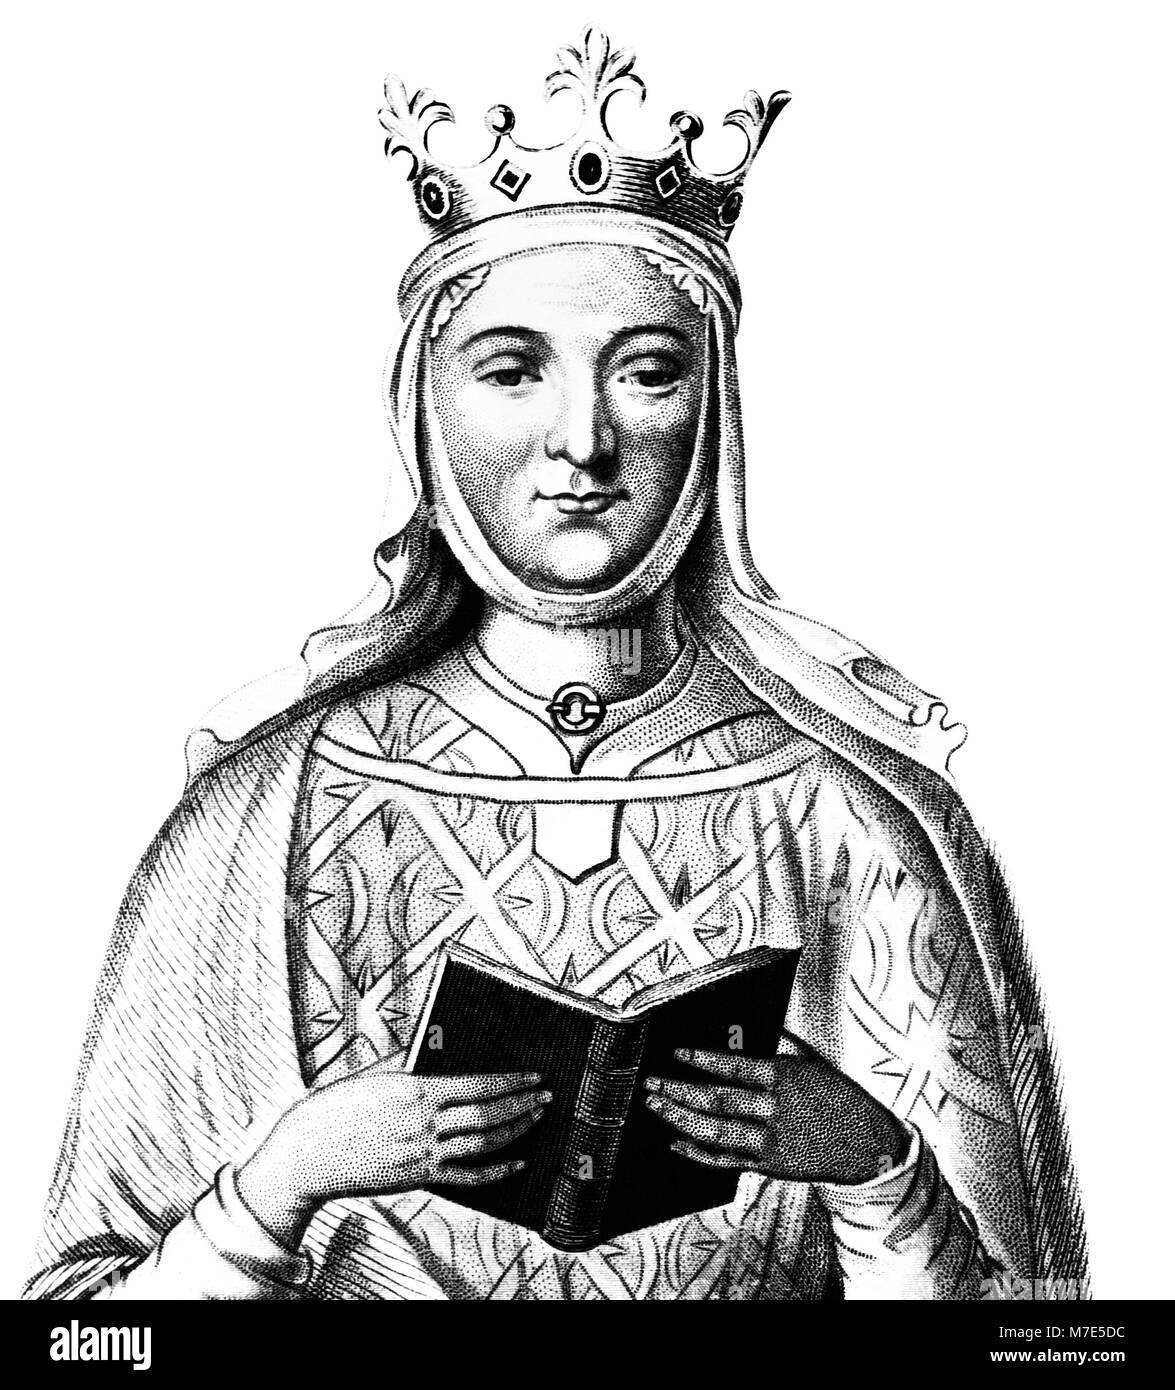 Eleanor of Aquitaine (1122-1204), engraving of the Queen consort of England (as the wife of Henry II) and of France - Stock Image